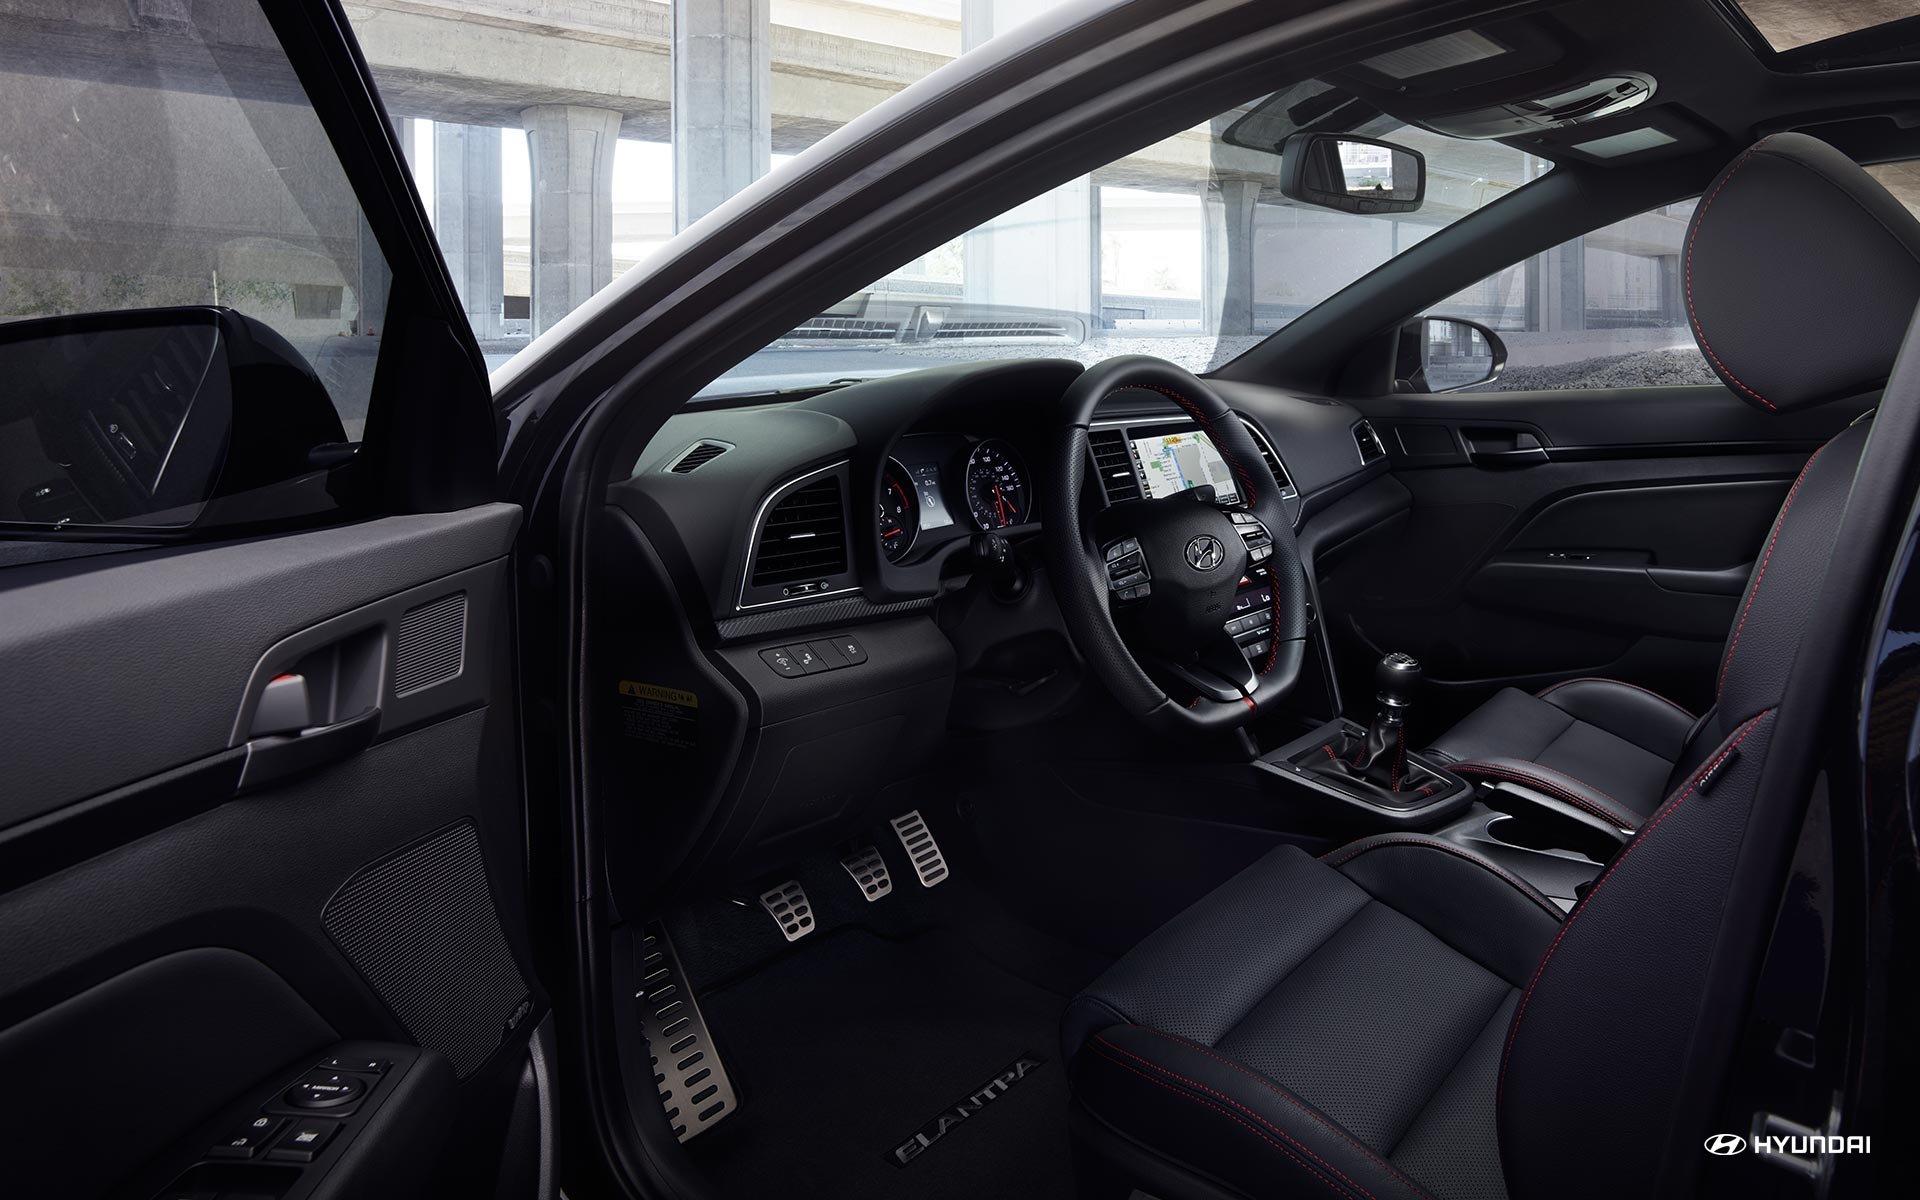 2018 Hyundai Elantra Black Cloth Interior